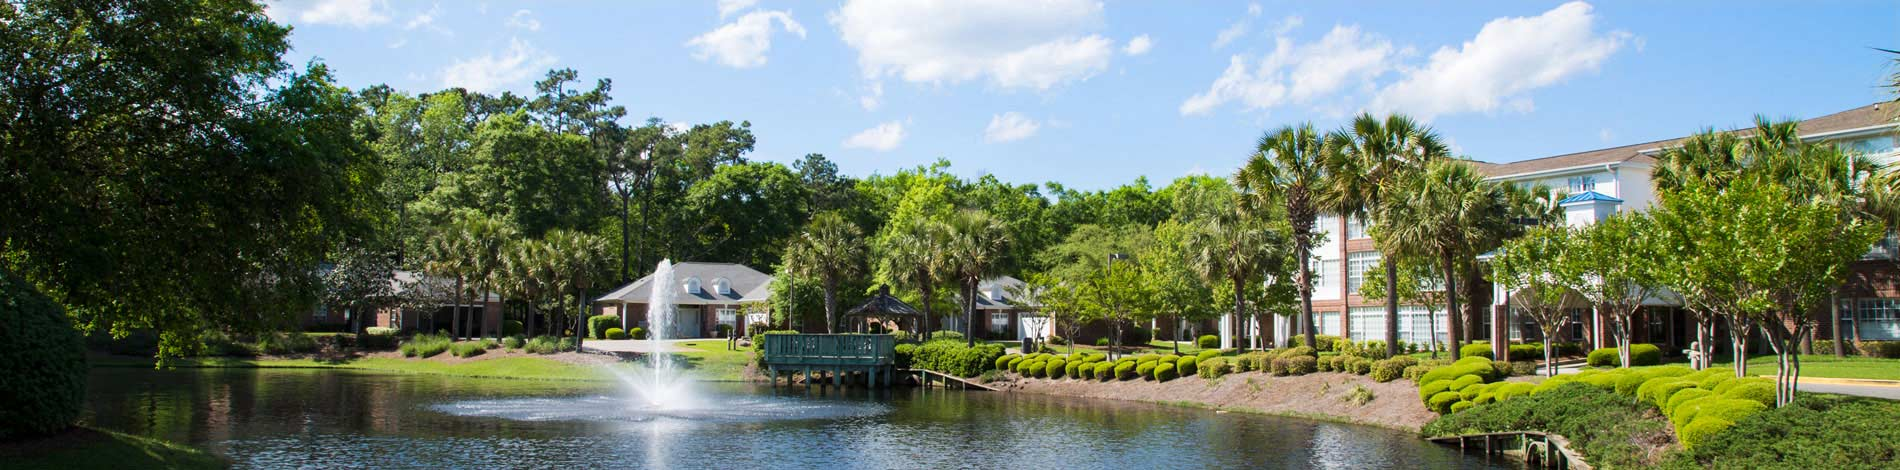 Pawleys Island Independent Living Retirement